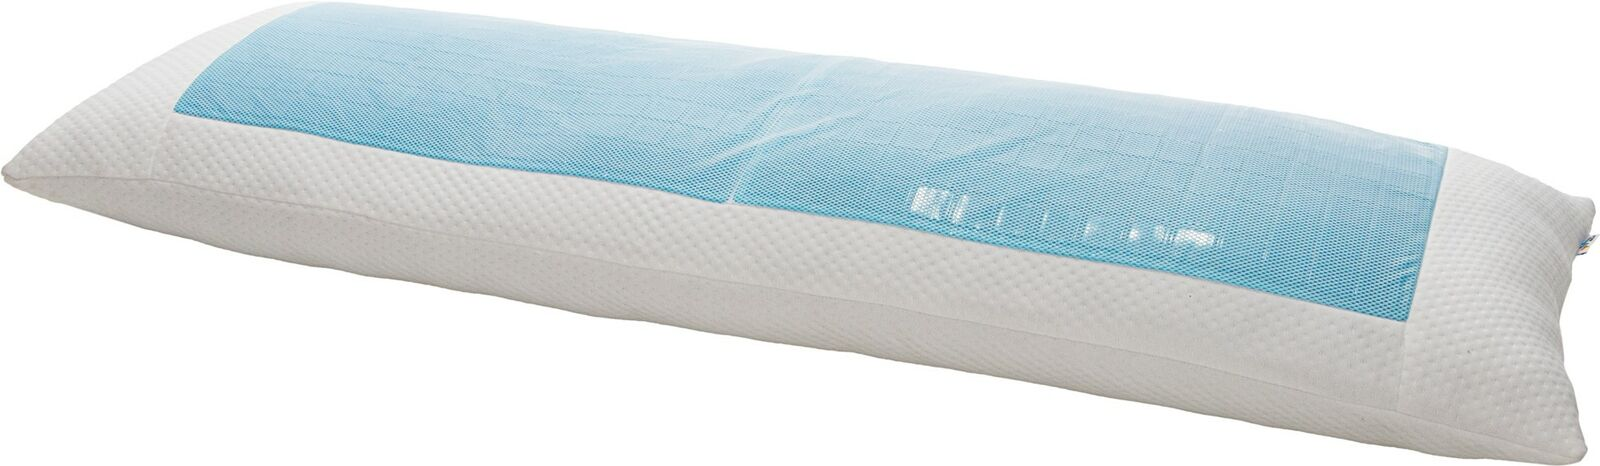 Mindful Design Adjustable Cooling Body Pillow Air Knit Cover For Sleep Support For Sale Online Ebay